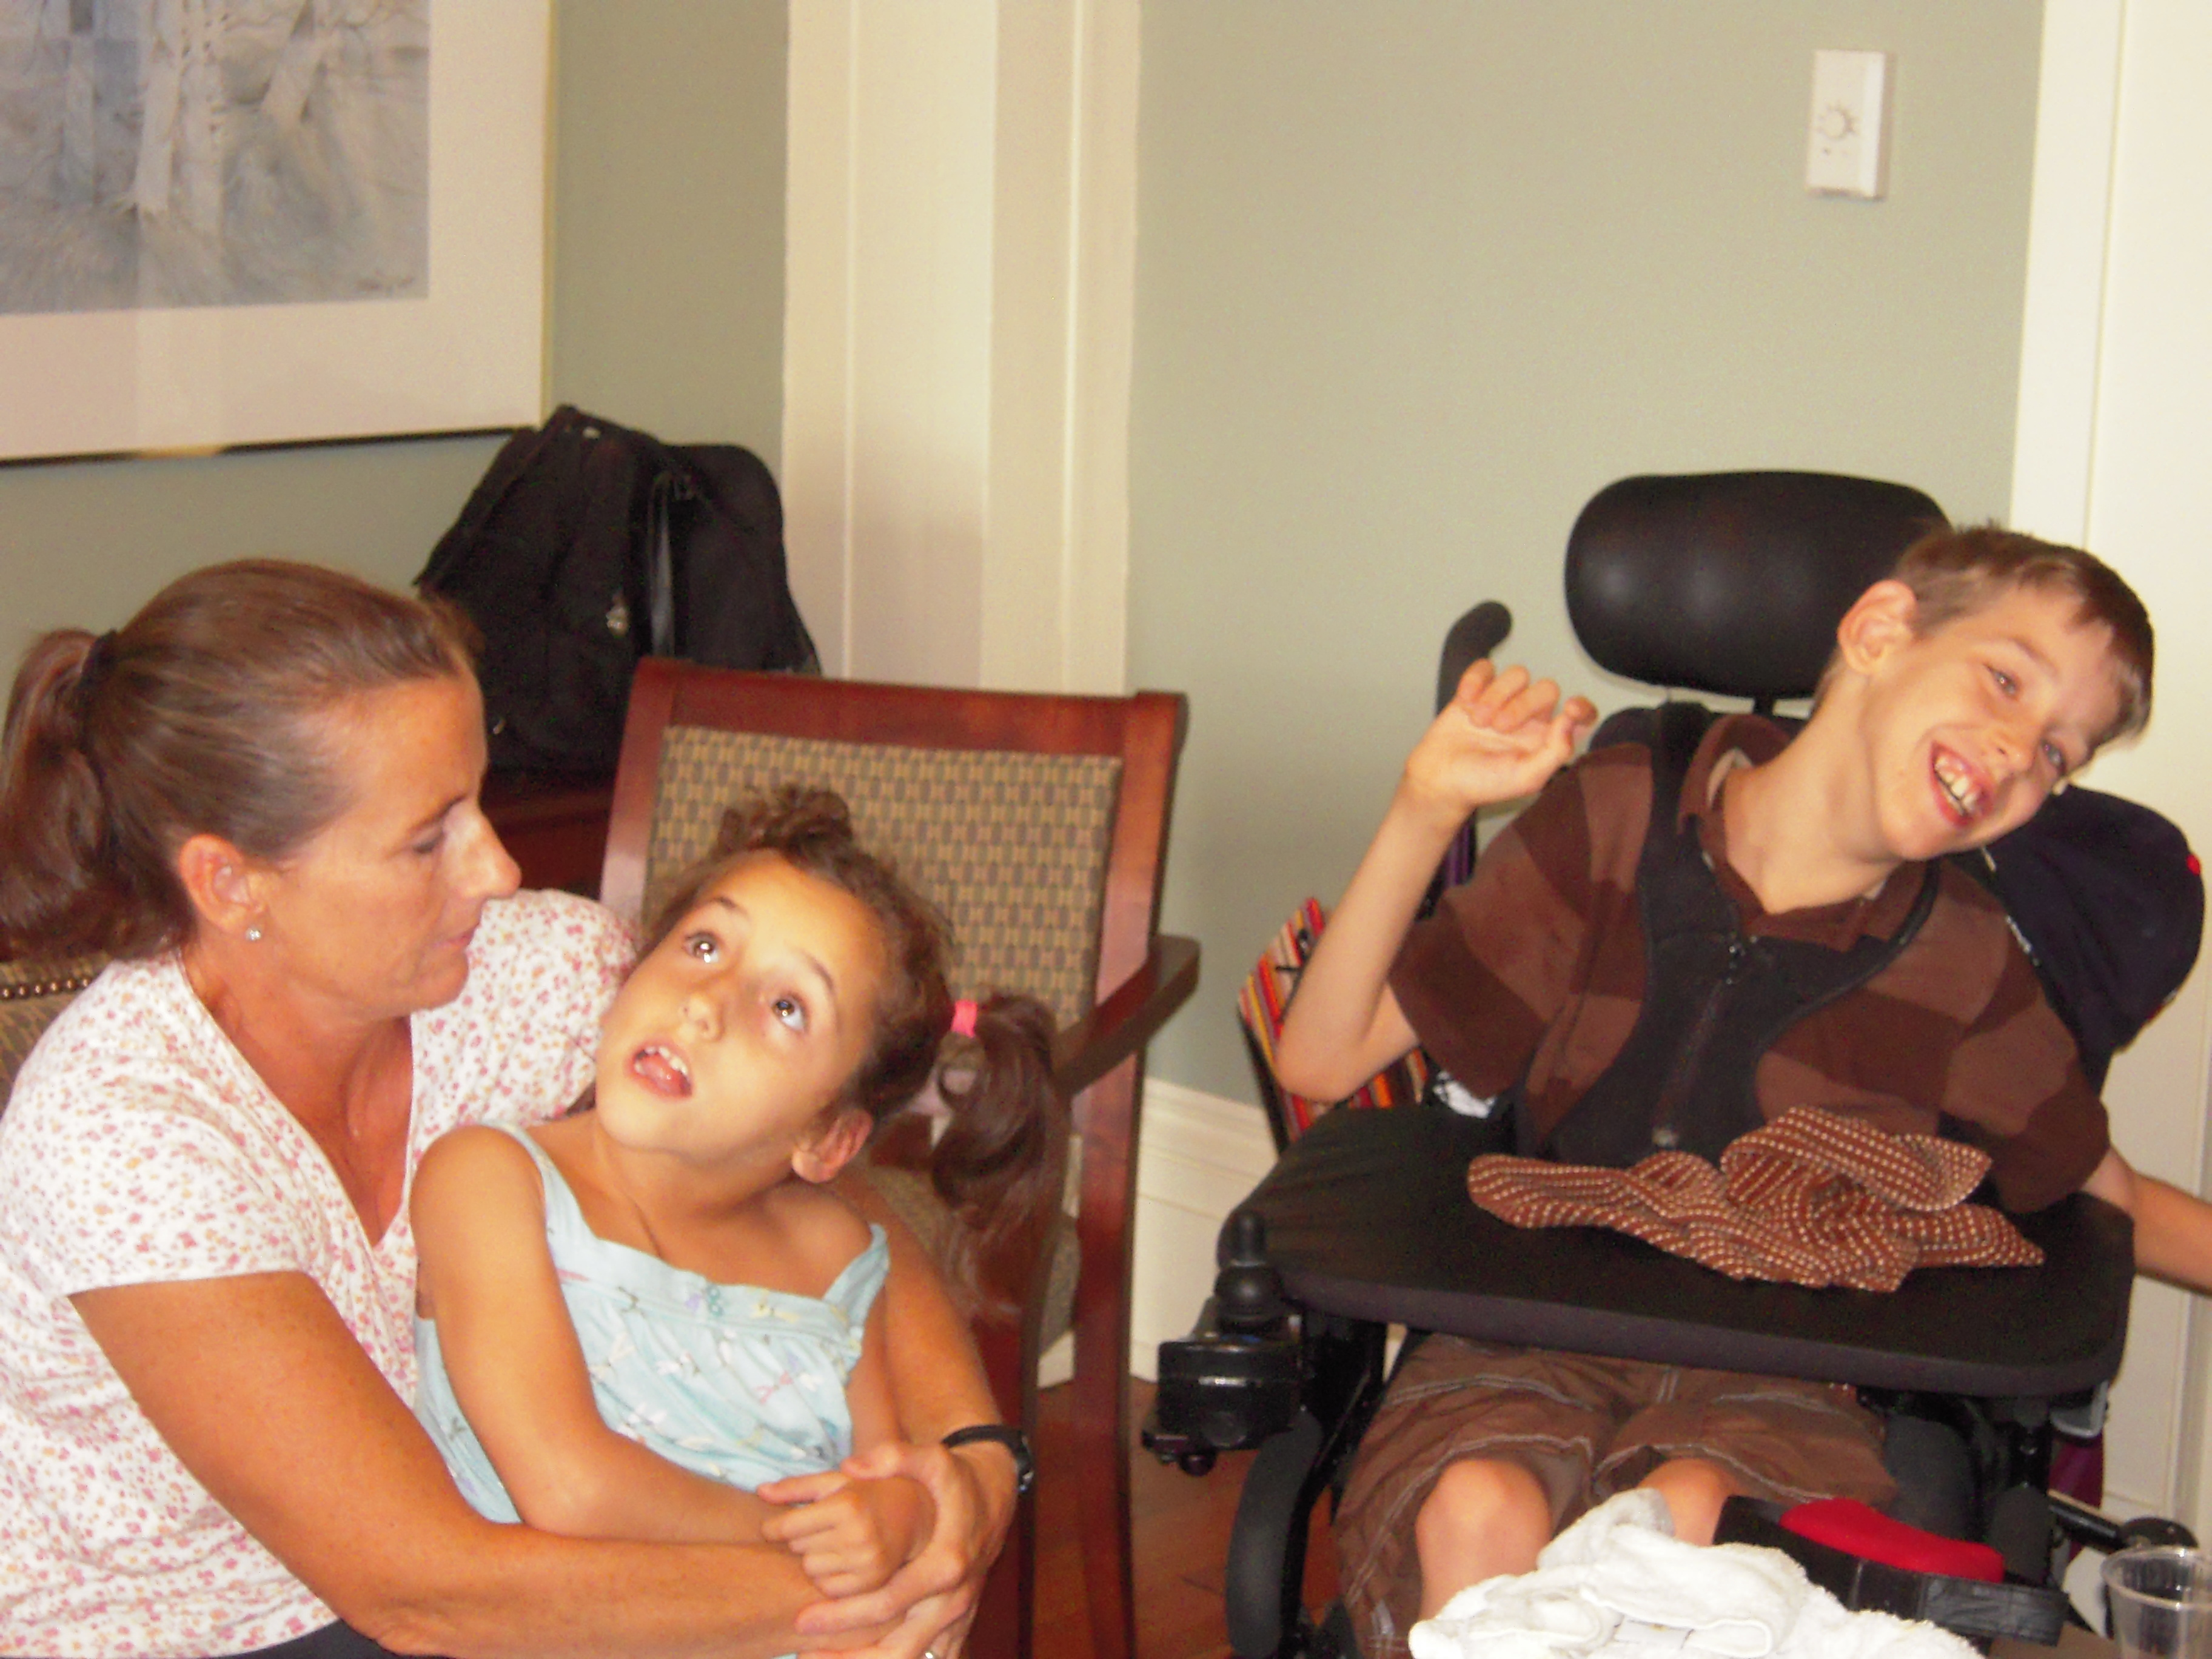 Lexi held by her mom, Justin smiling in his wheelchair